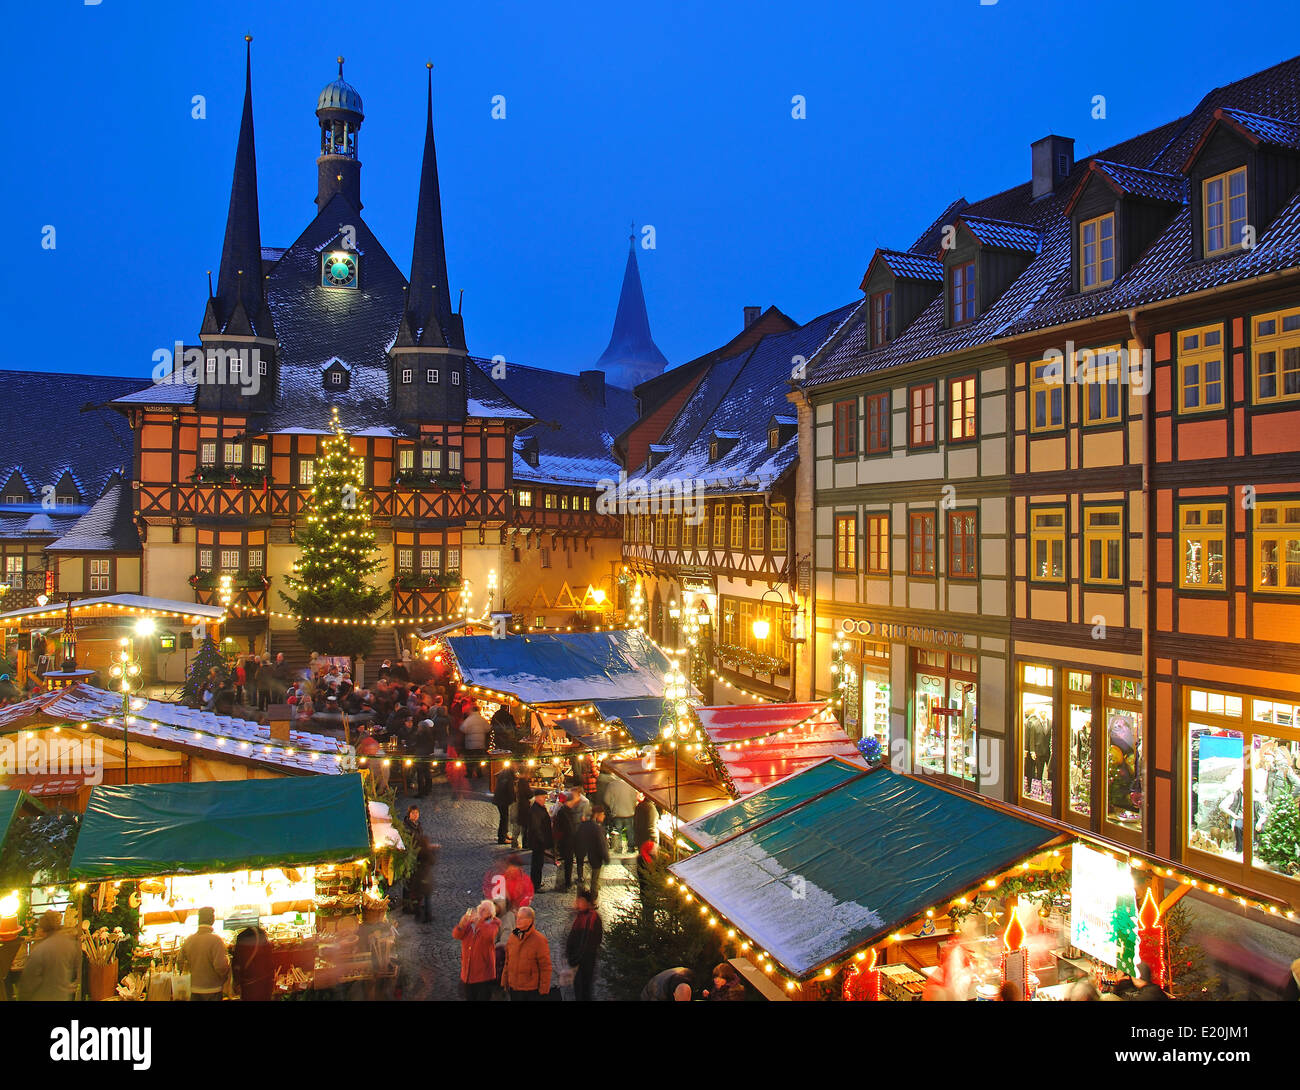 christmas market in wernigerode stock photo royalty free. Black Bedroom Furniture Sets. Home Design Ideas